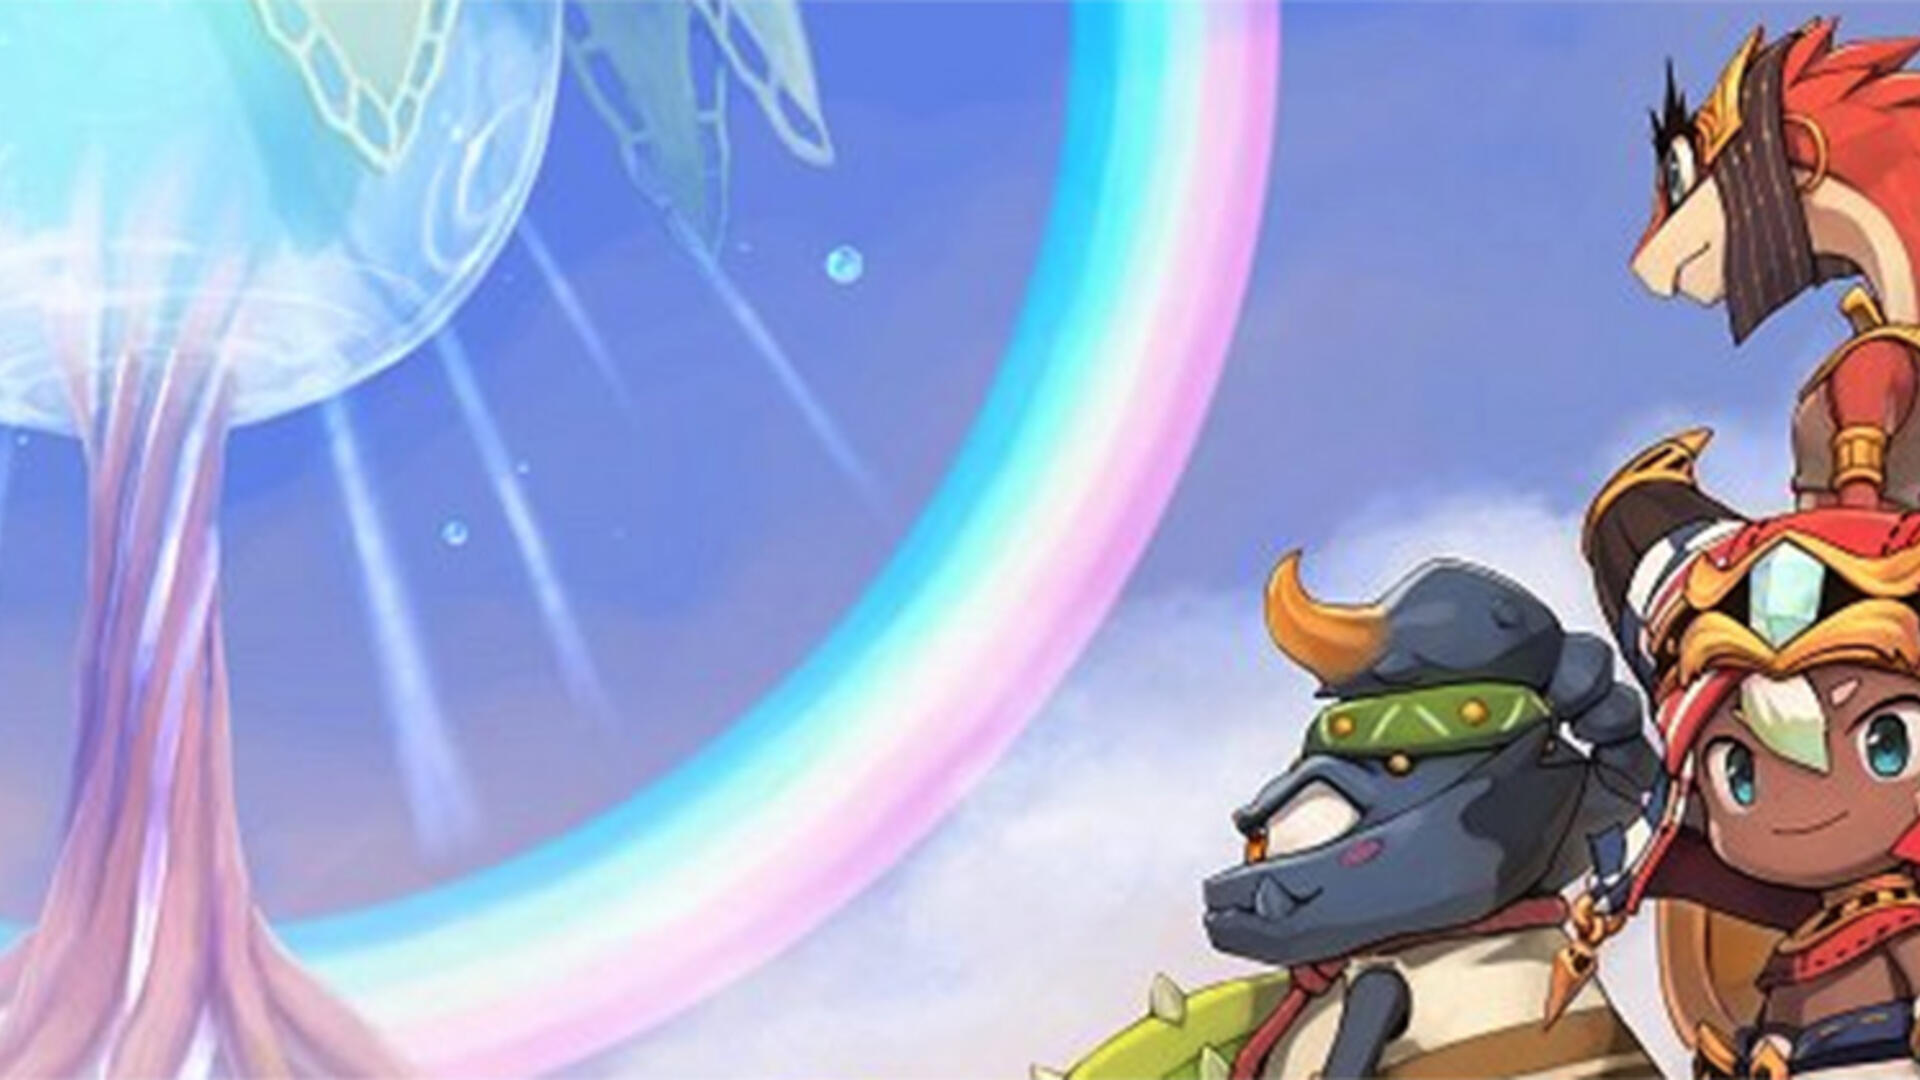 Nintendo Reveals Ever Oasis, an Ultra-Adorbs 3DS RPG